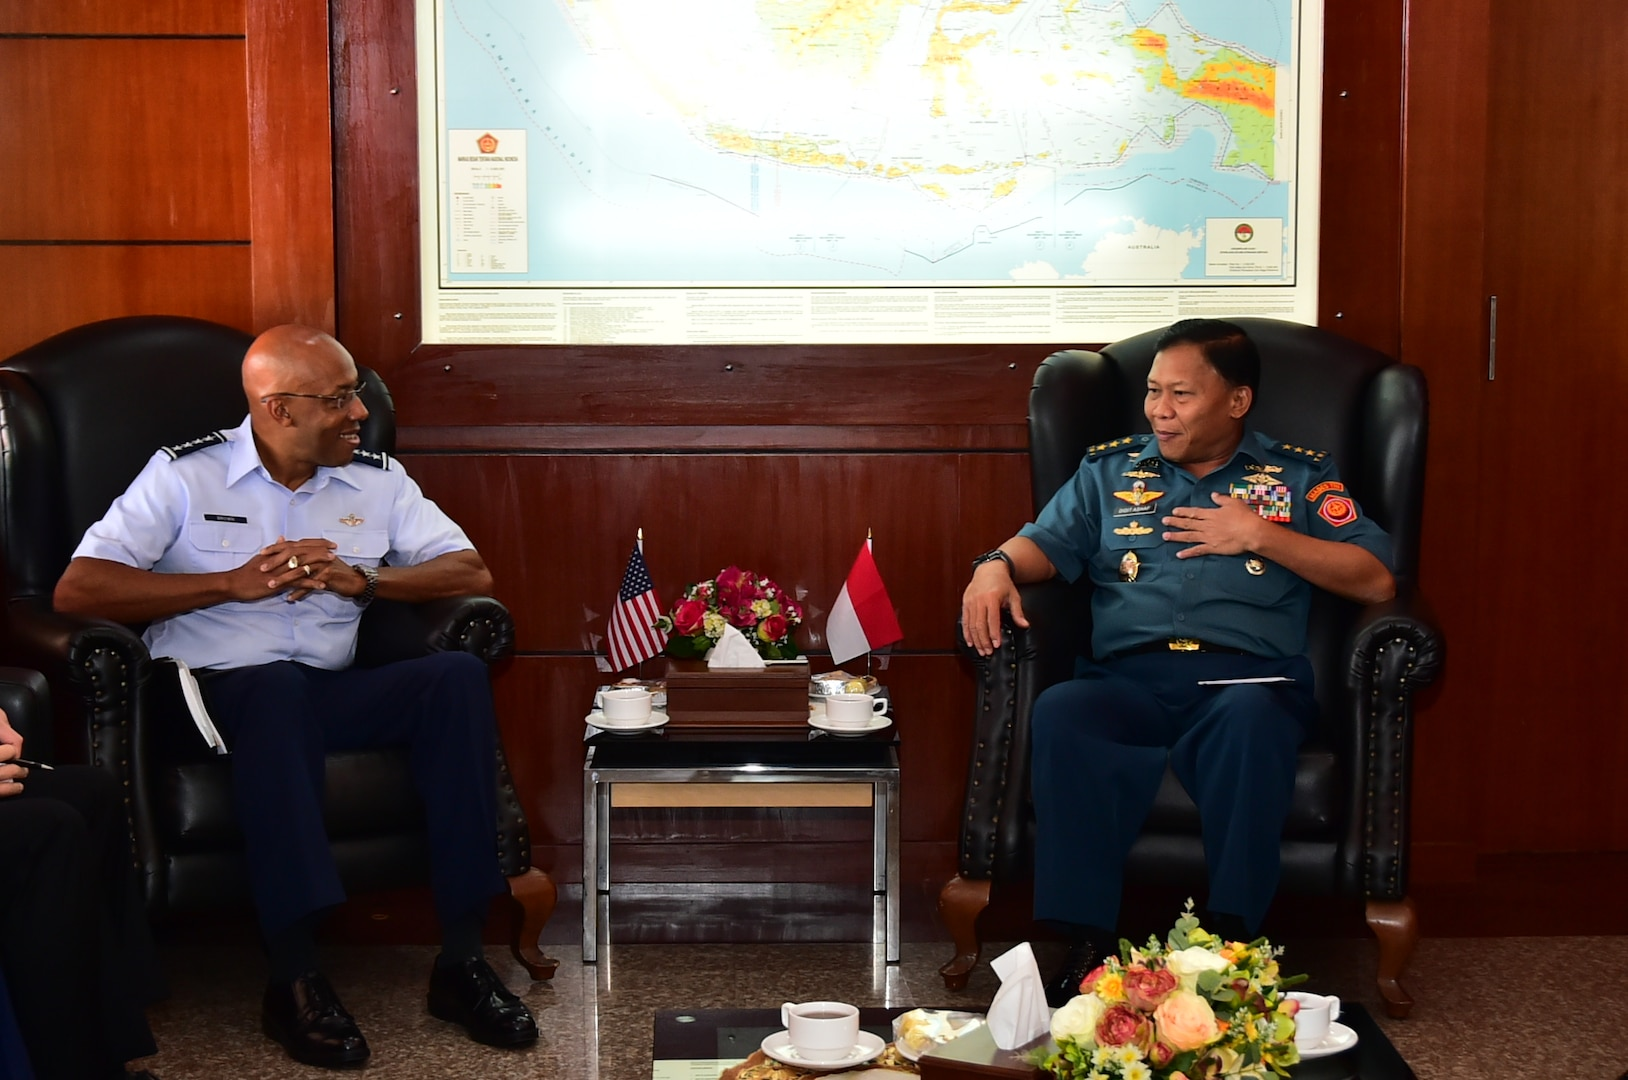 COMPACAF Visit Highlights 70 Years of U.S., Indonesia Relationship